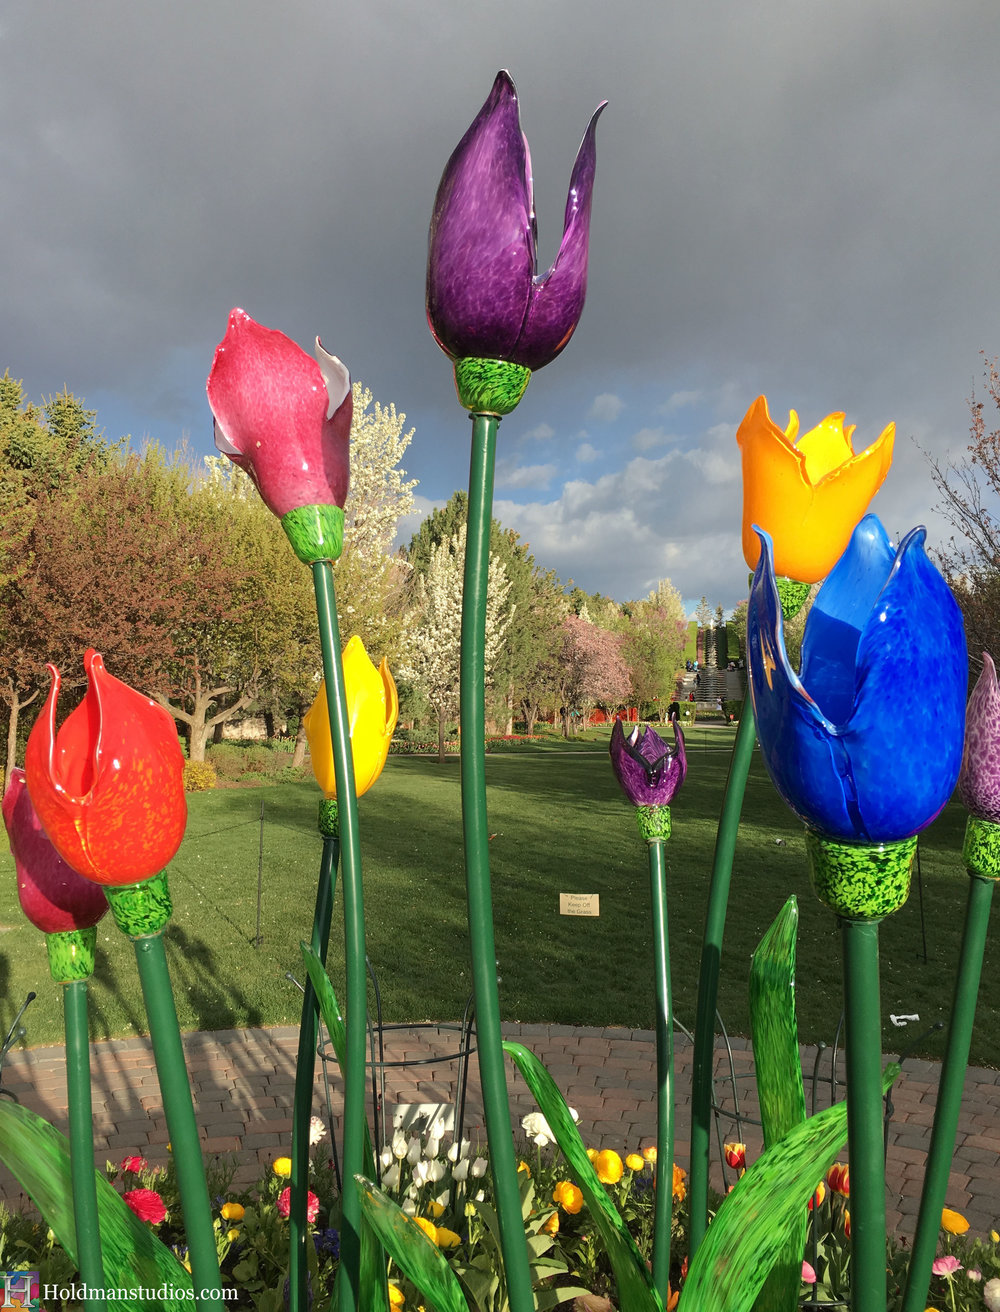 Blown Glass_Ashton Garden Tulips 5.jpg